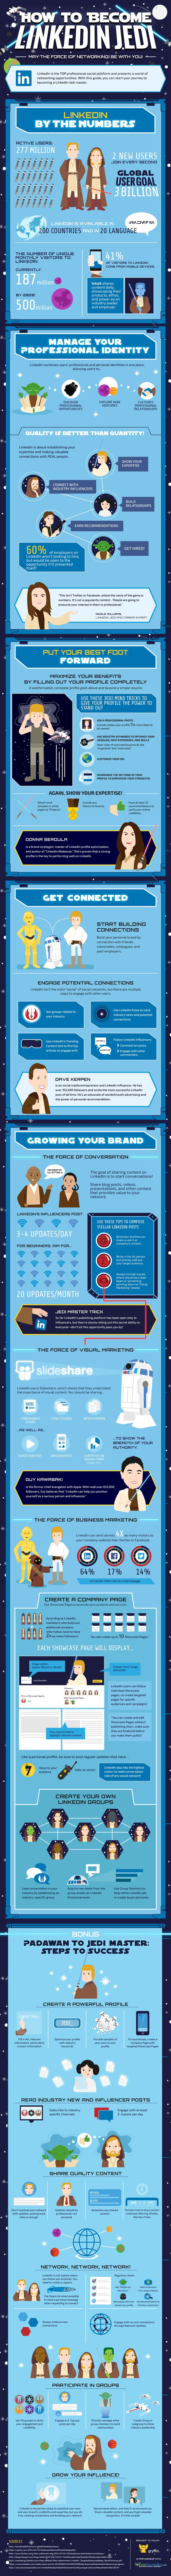 May the (Work) Force Be With You: How to Be a LinkedIn Jedi (Infographic)